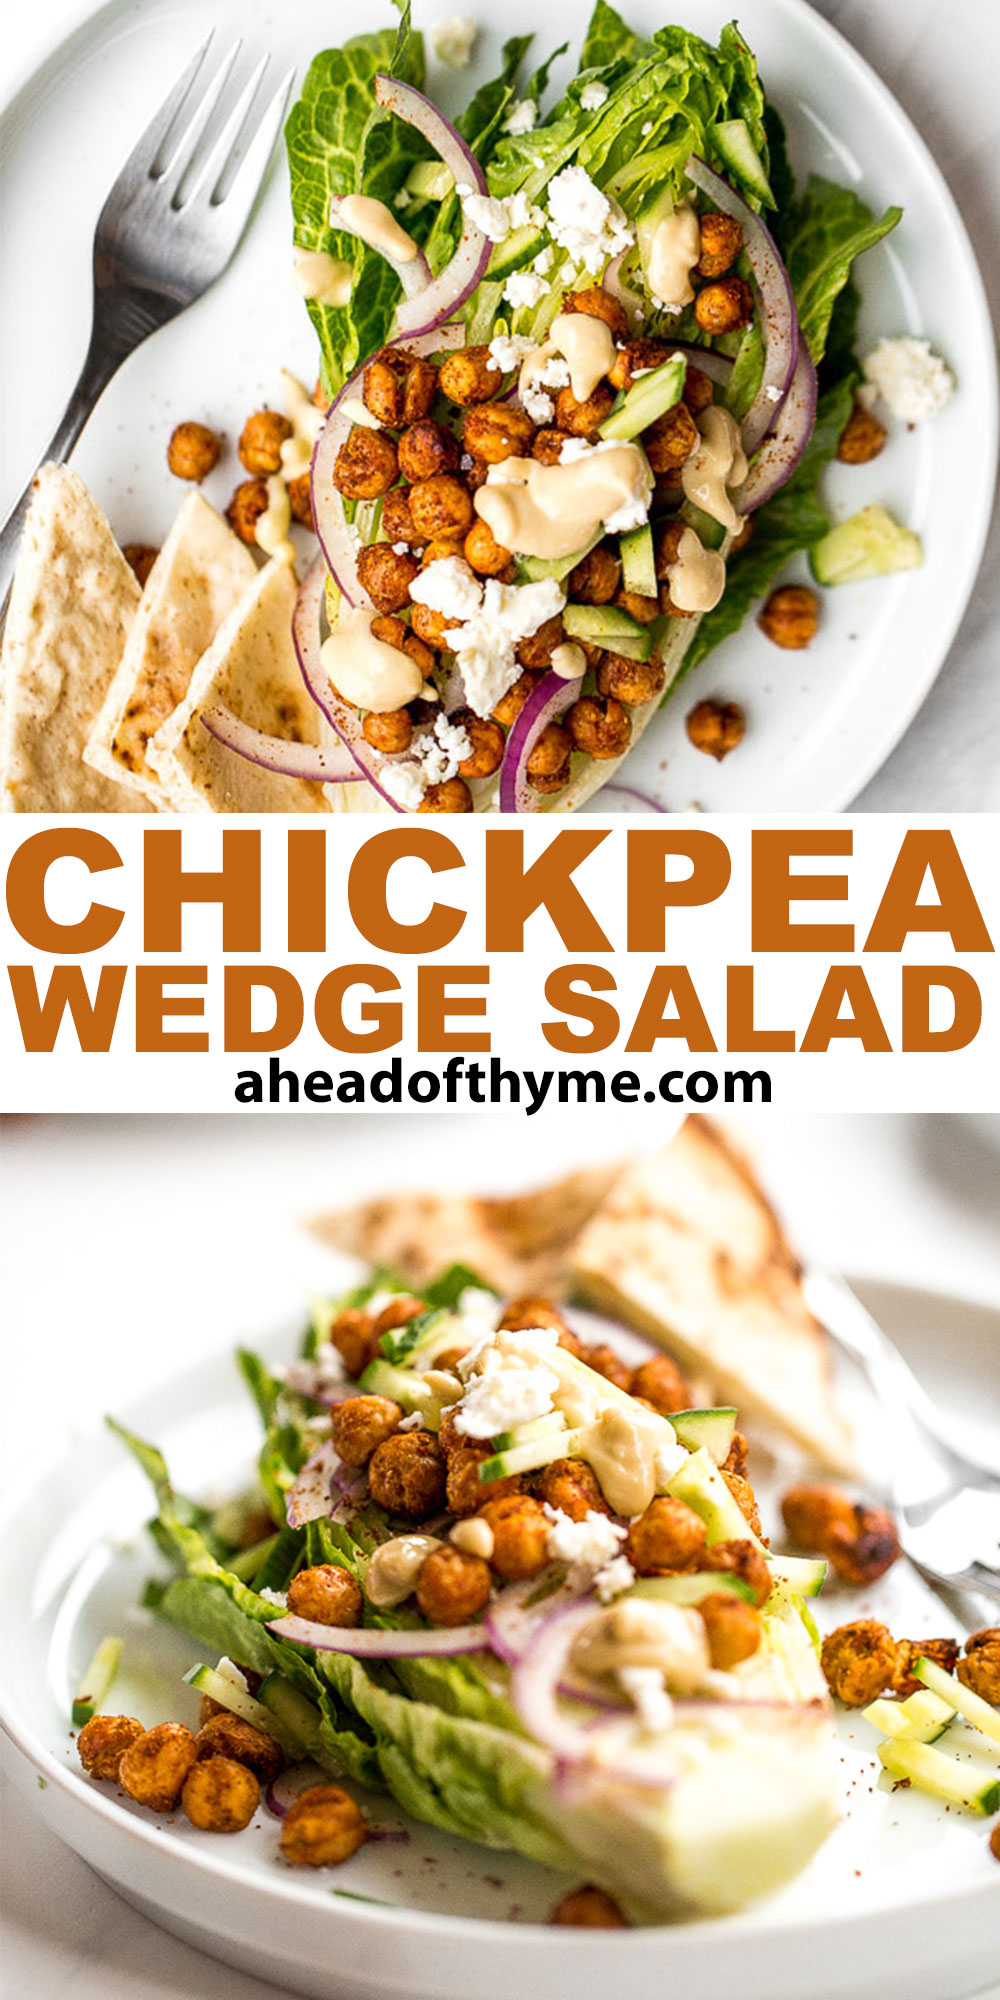 Mediterranean Chickpea Wedge Salad